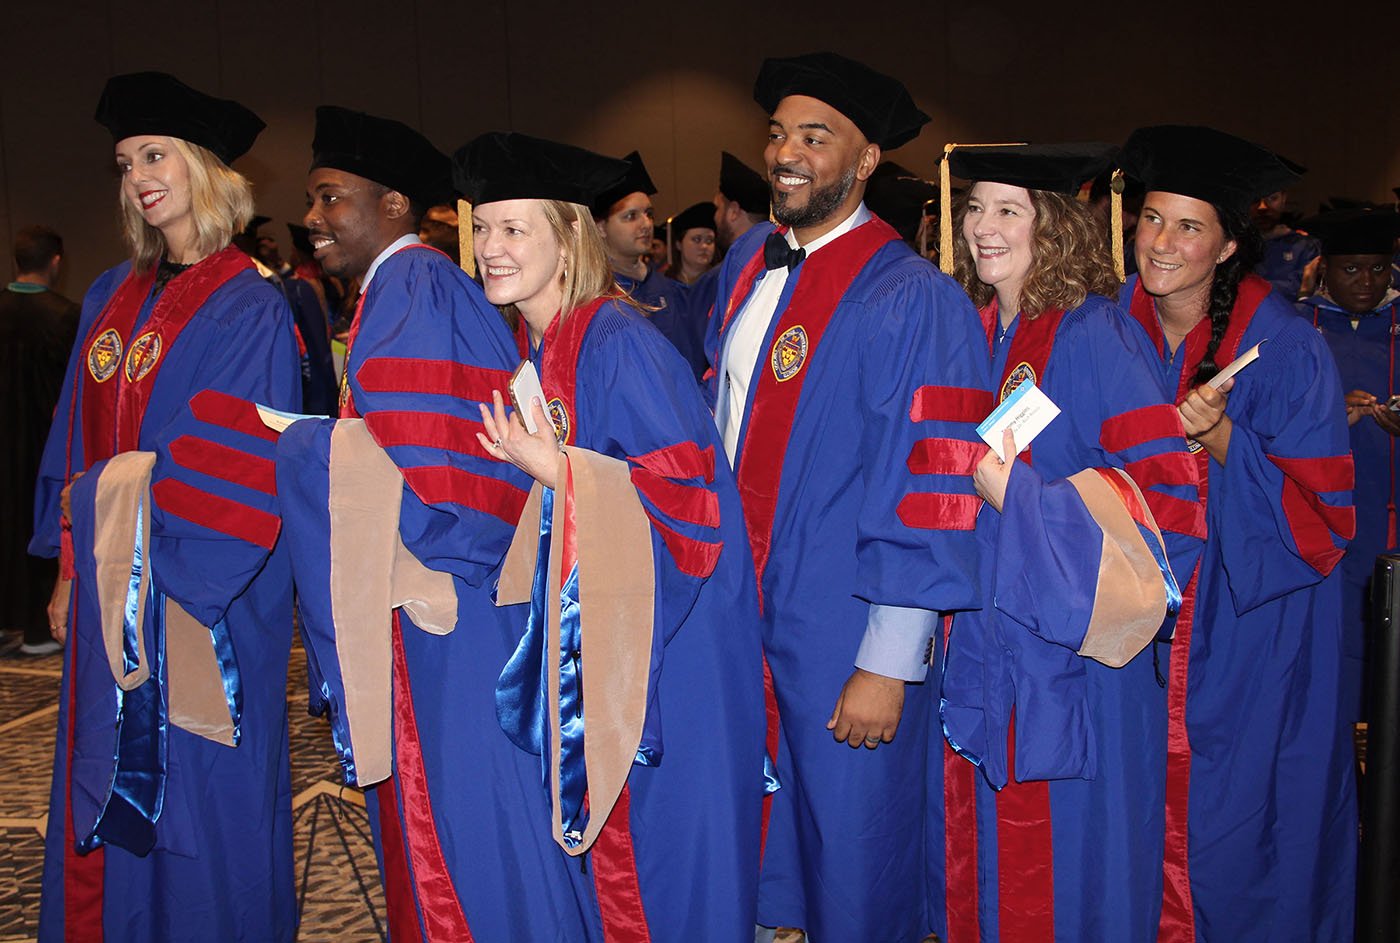 The first graduating class earning a Doctorate of Business Administration from DePaul University